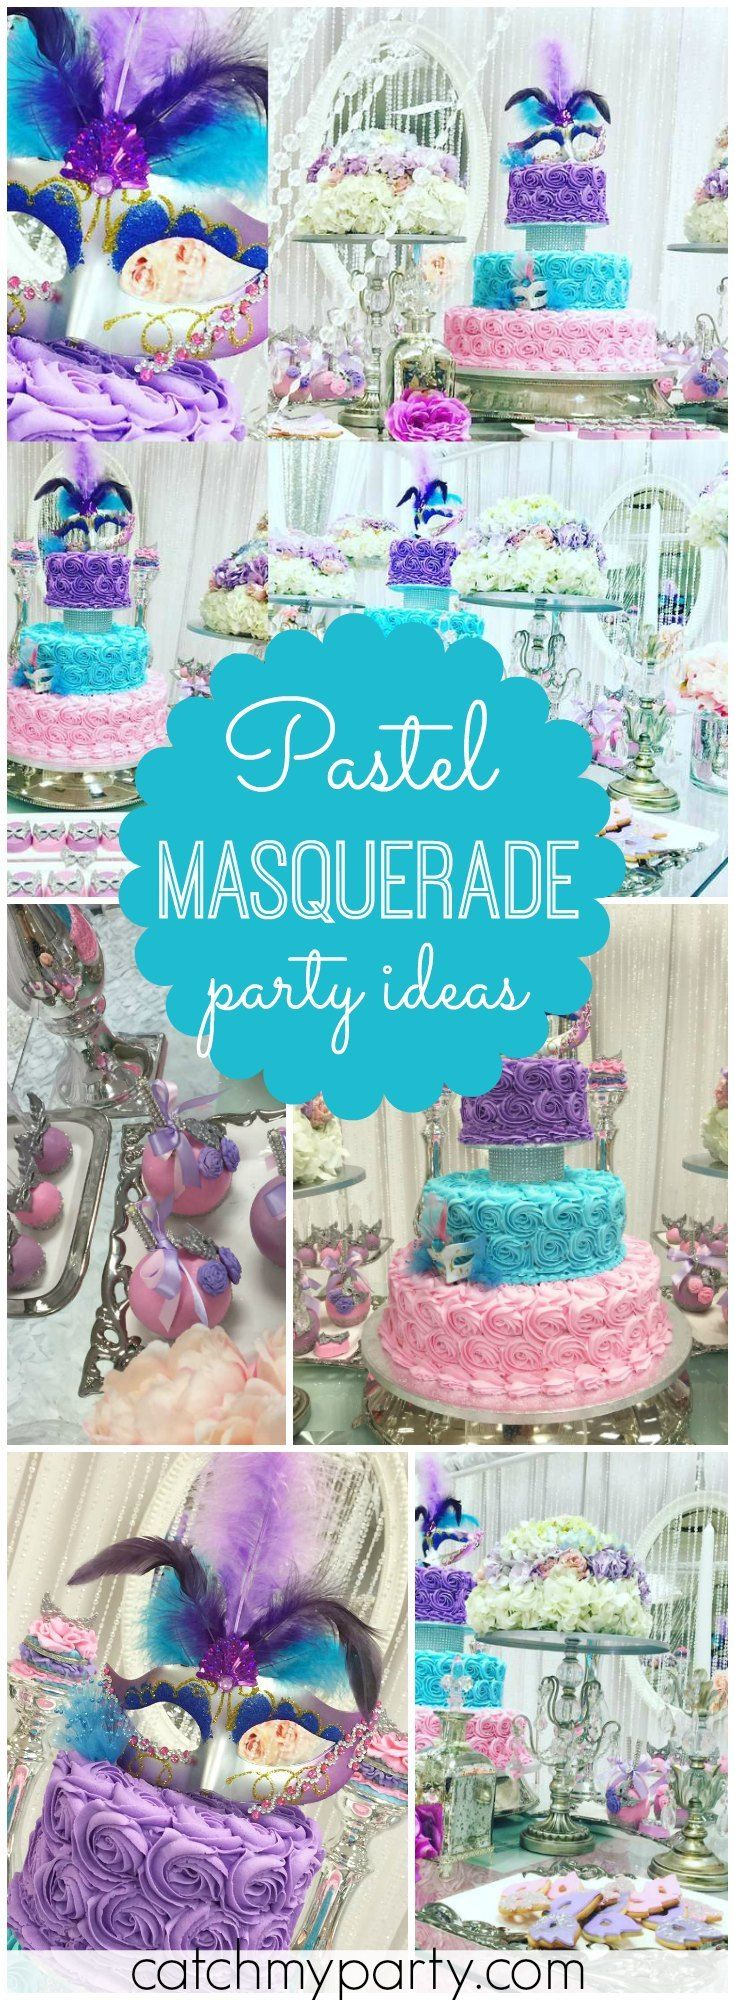 This lovely Sweet Fifteen party has a pastel masquerade theme! See more party ideas at Catchmyparty.com!